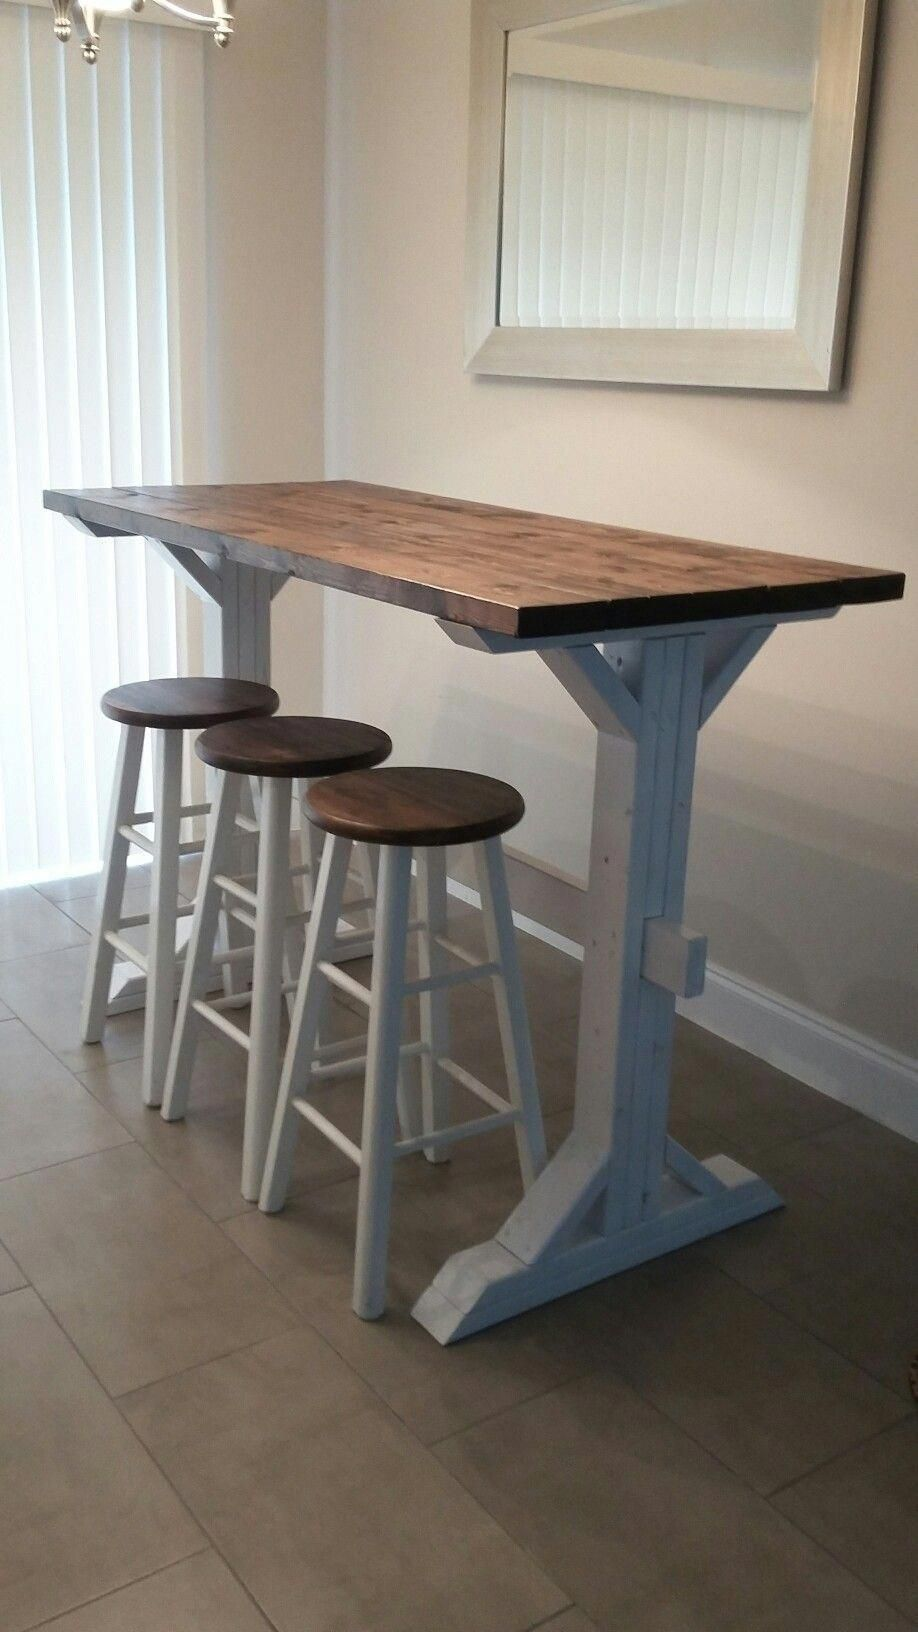 bar table and stools on see our website for more details on bar tables and stools it is actually an excellent place to get more i kitchen bar table home decor kitchen bar table diy pinterest